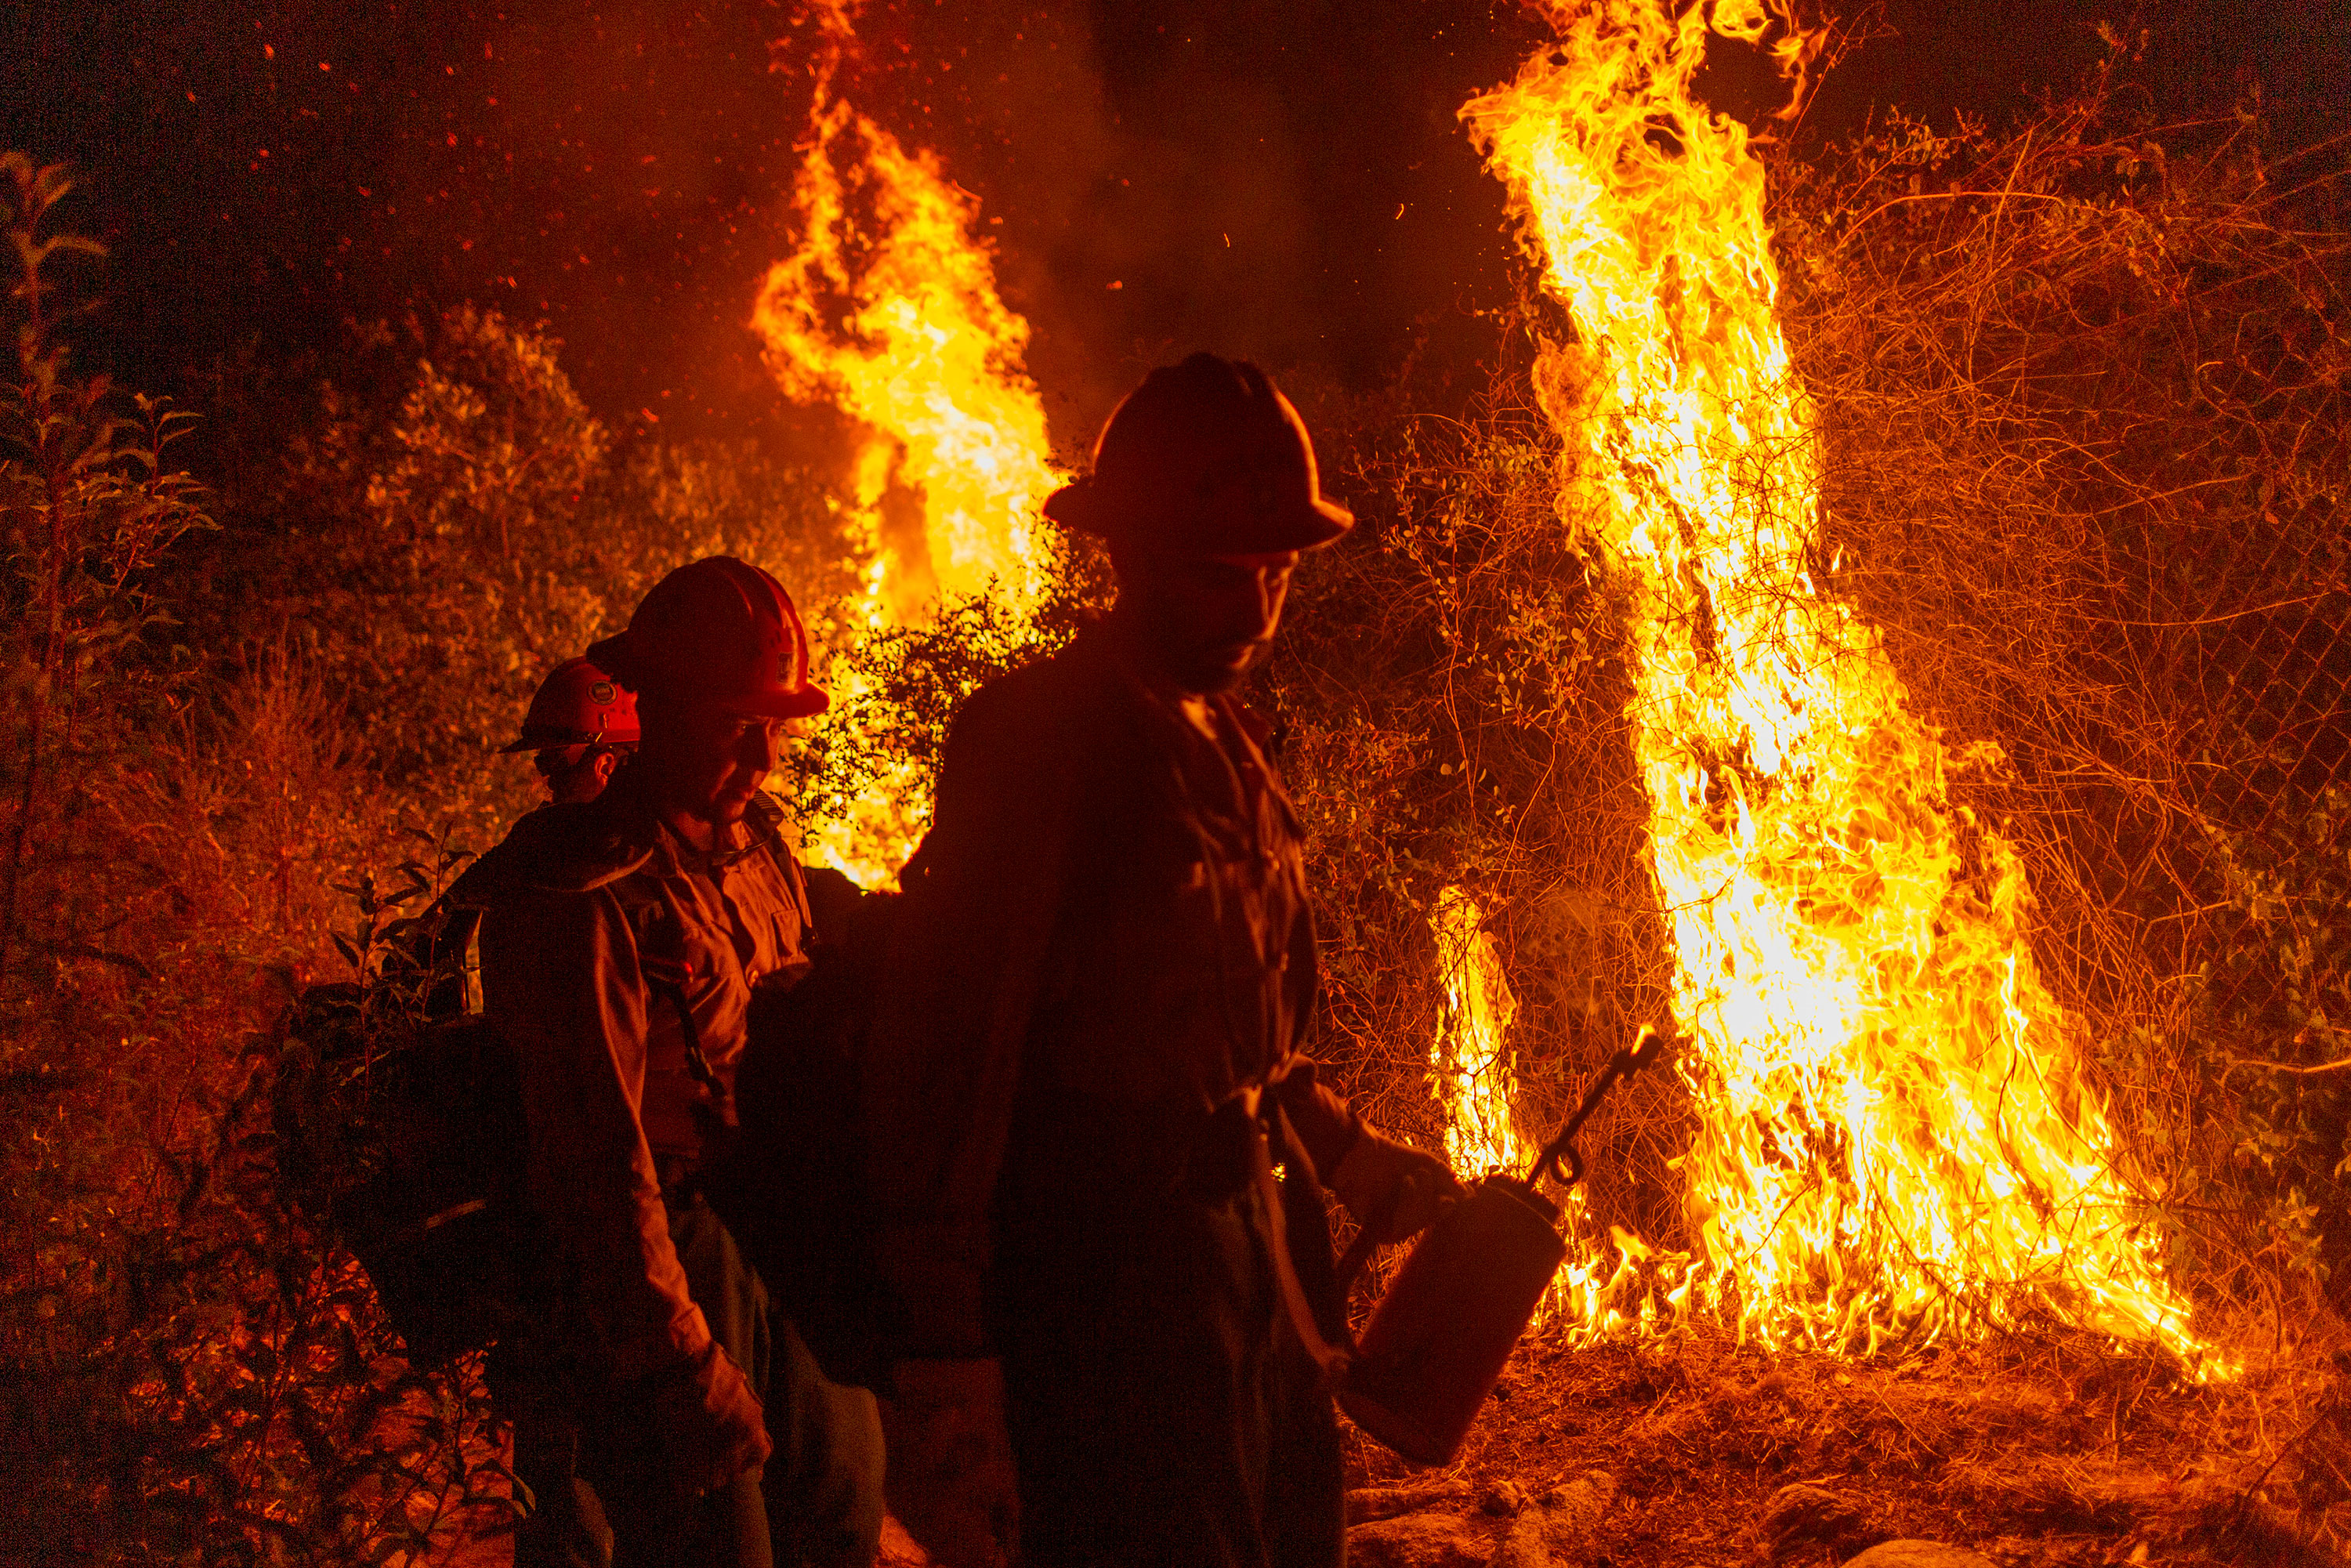 California governor emphasizes wildfires show reality of climate change